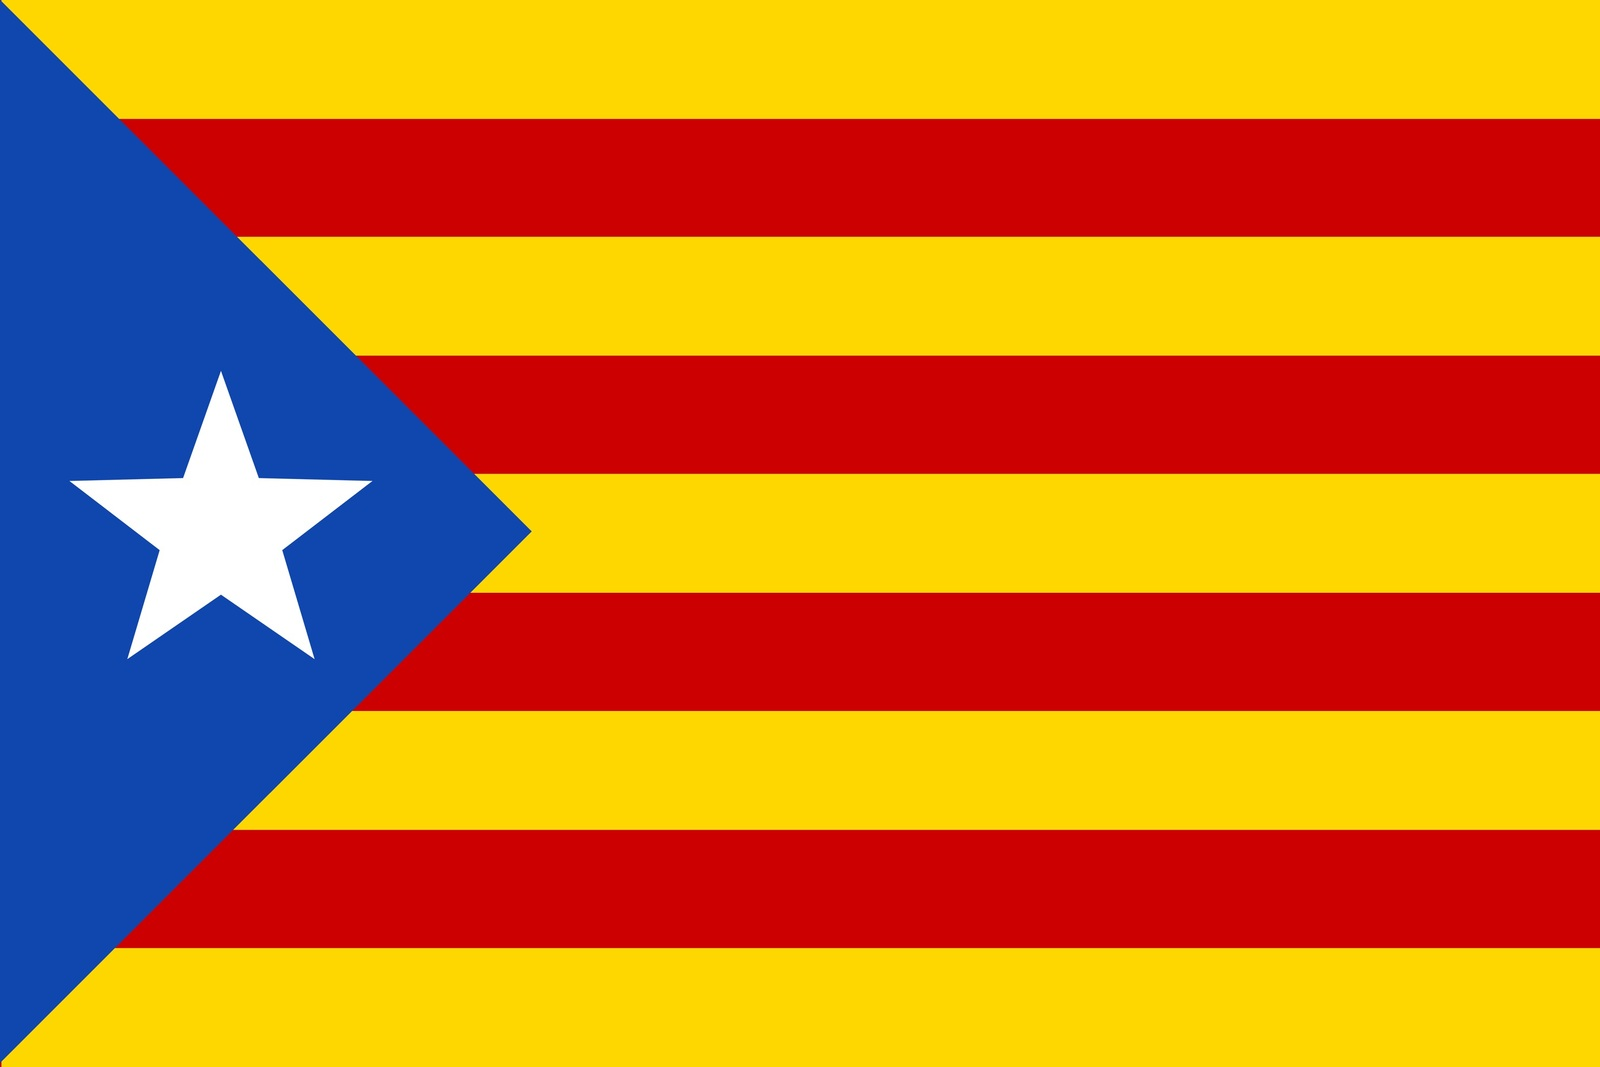 Catalan Flag self cling vinyl window sticker 12x8cm L'Estelada Barcelona Spain